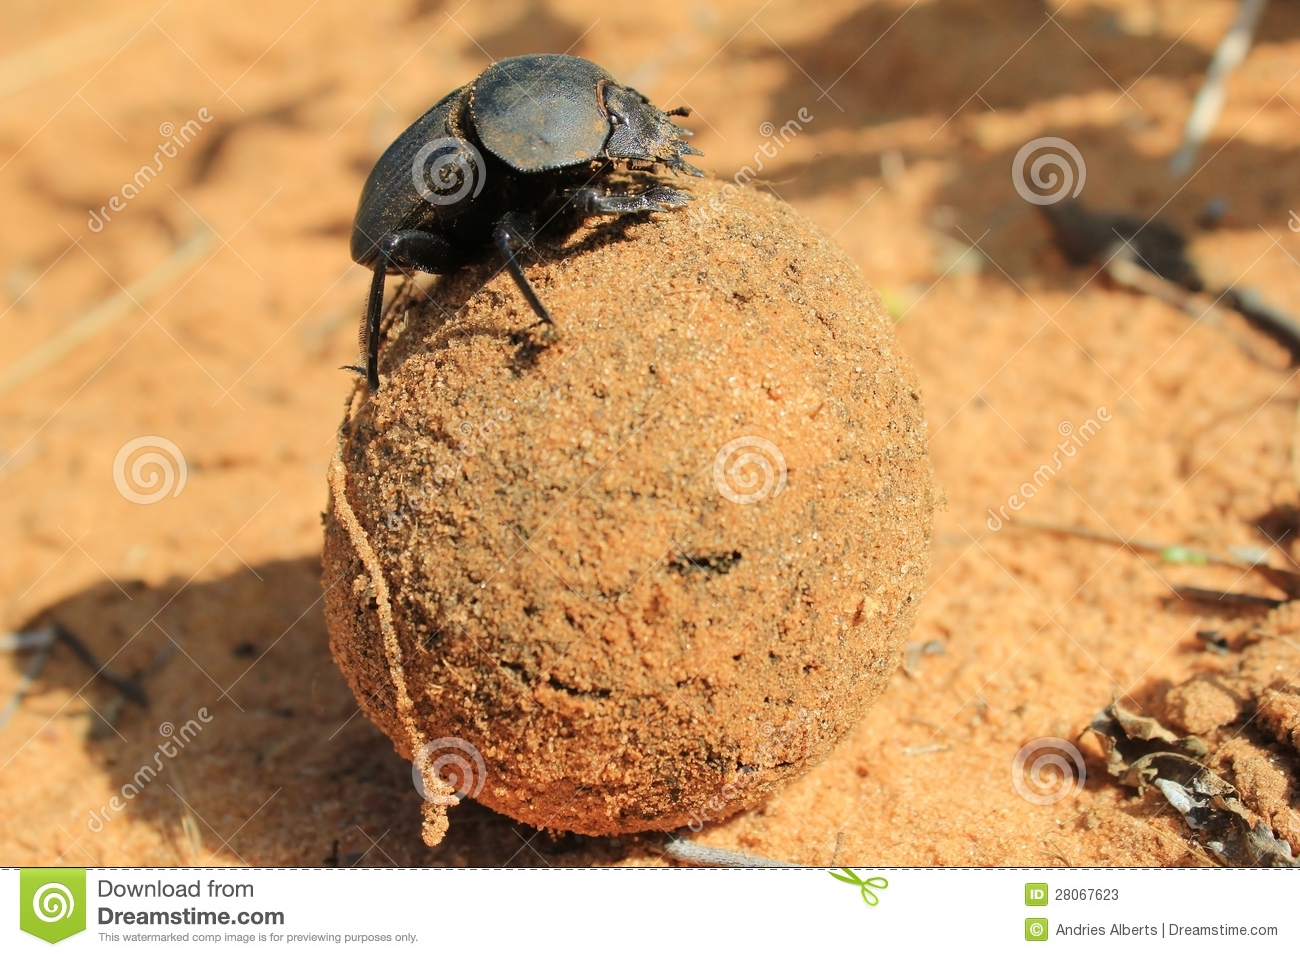 Dung Beetle, African Insect that Loves his Job